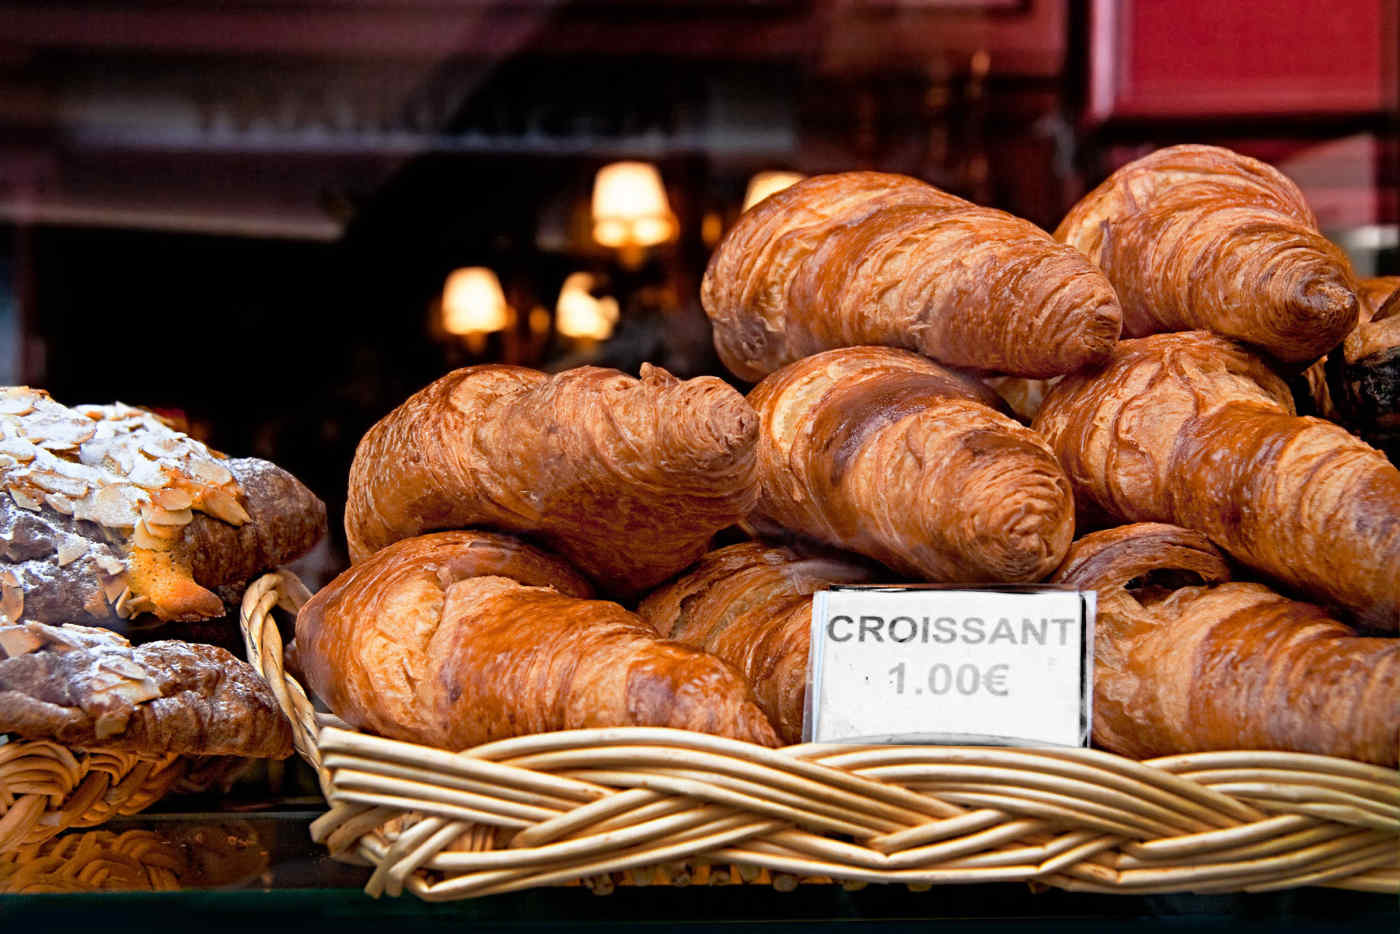 Croissants in Paris, France